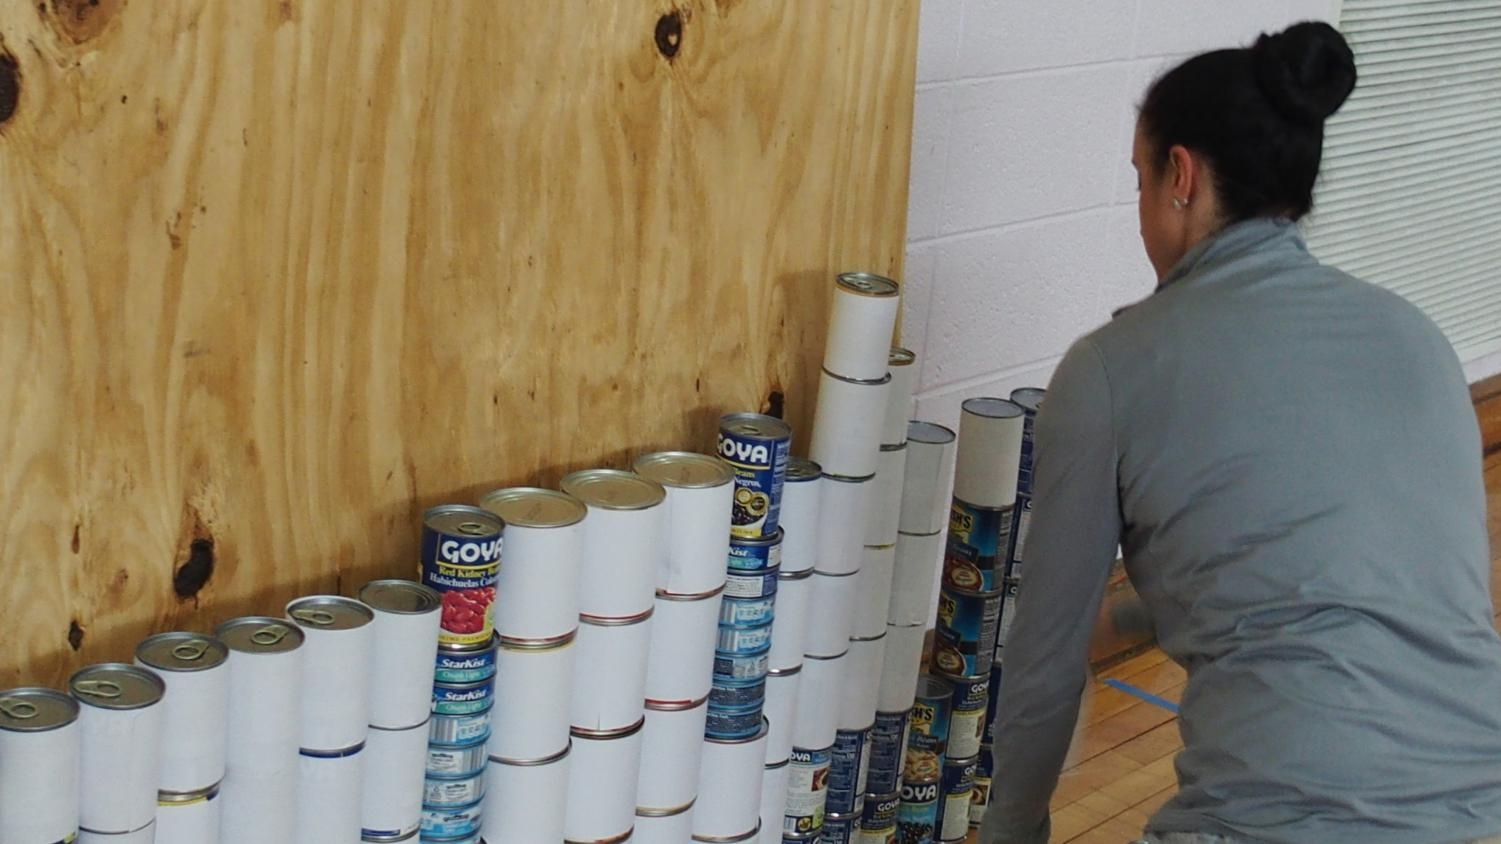 Ms. Rapoport gets the teachers\' canstruction started.